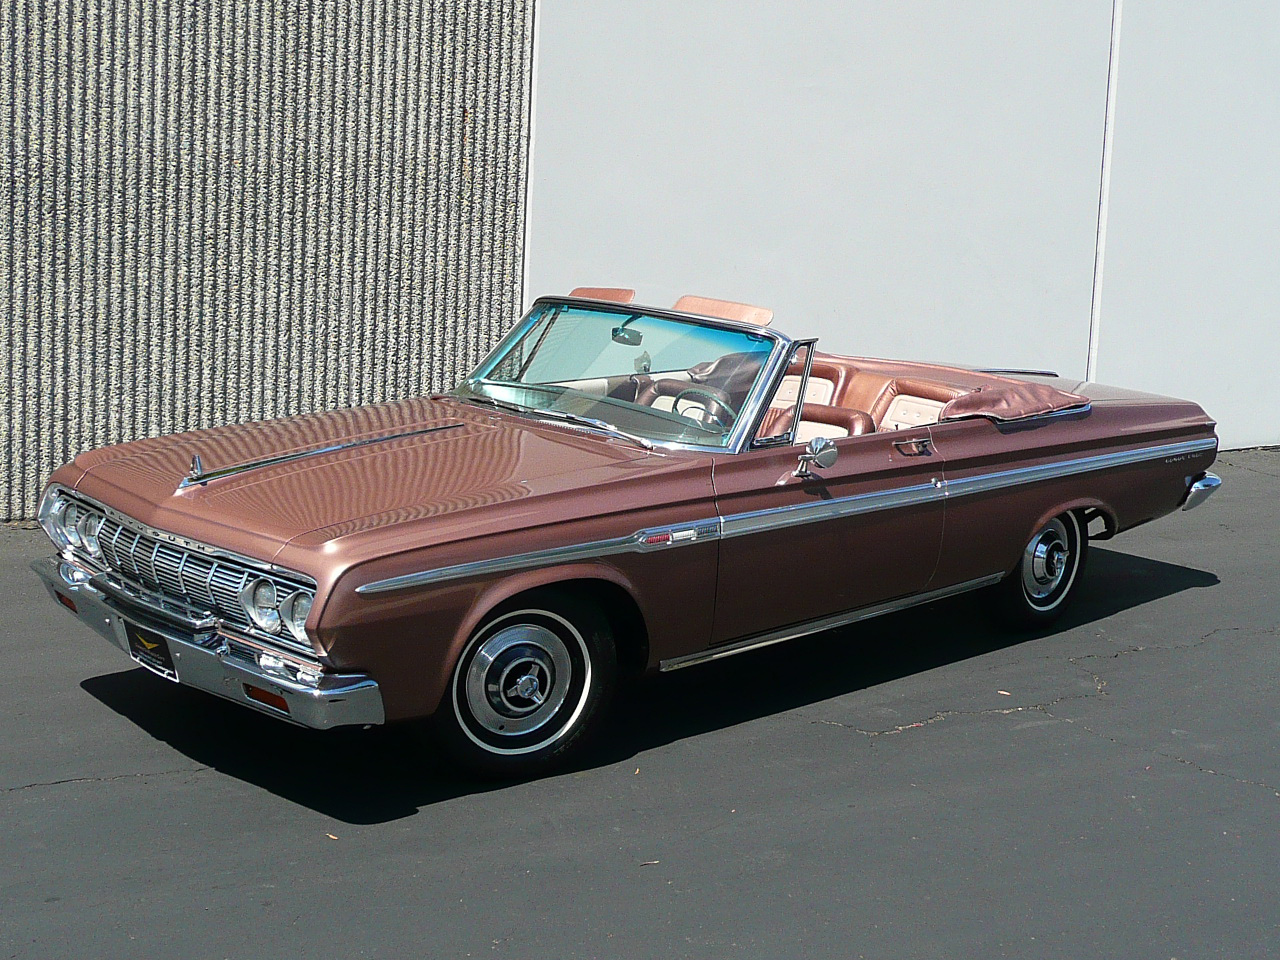 1964 PLYMOUTH SPORT FURY CONVERTIBLE - Front 3/4 - 80987